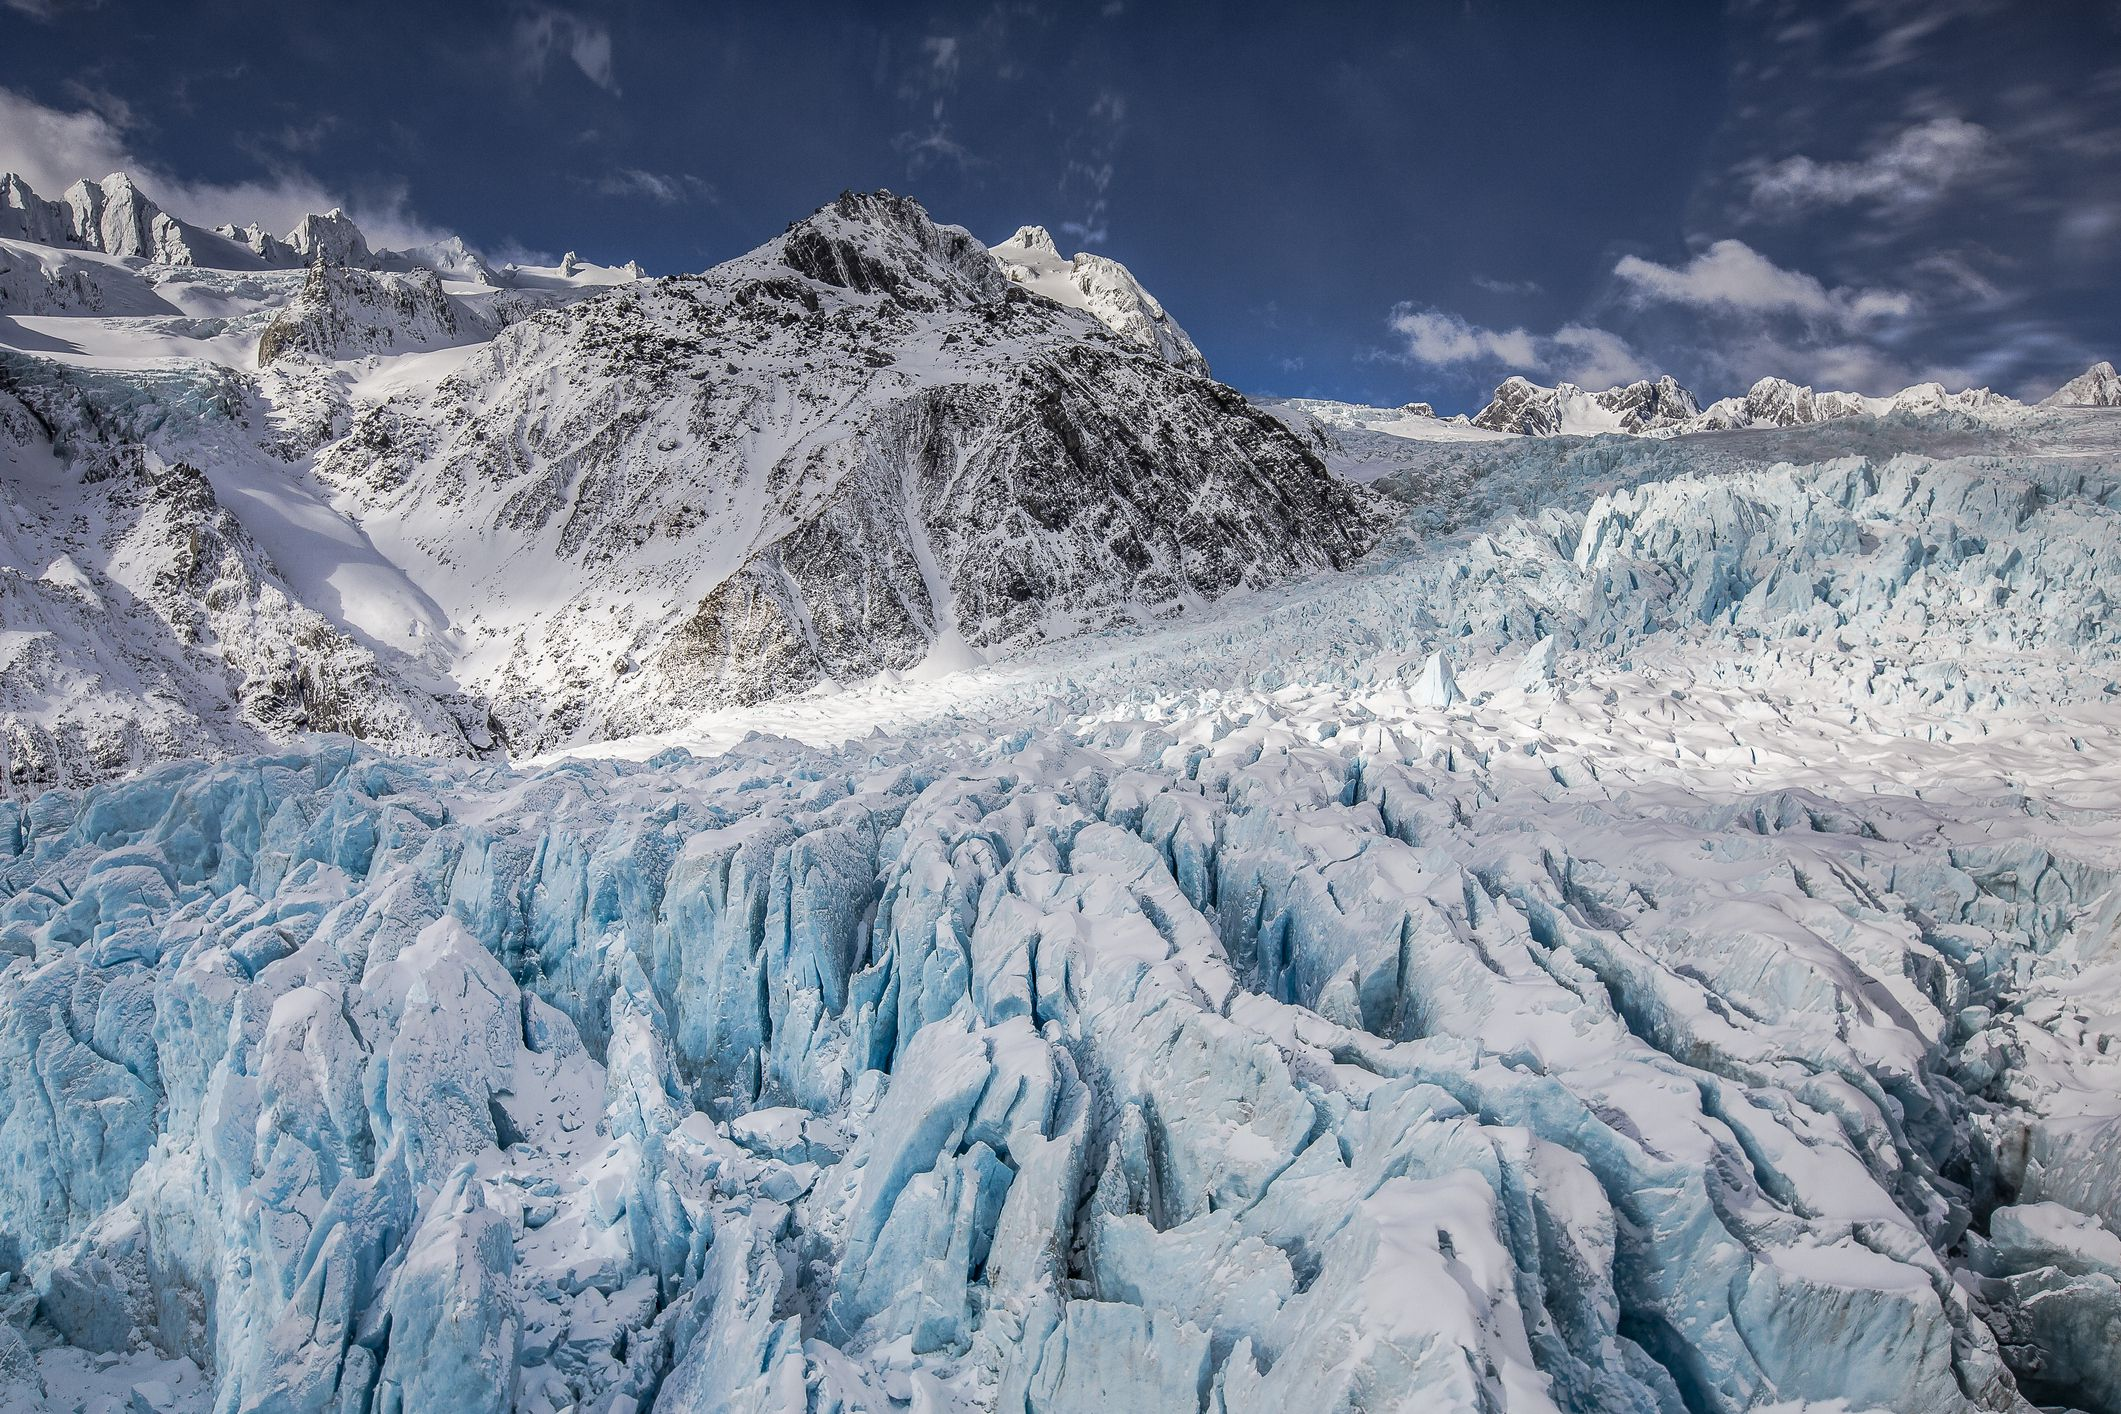 Experience adventure at its best on New Zealand's Franz Josef Glacier